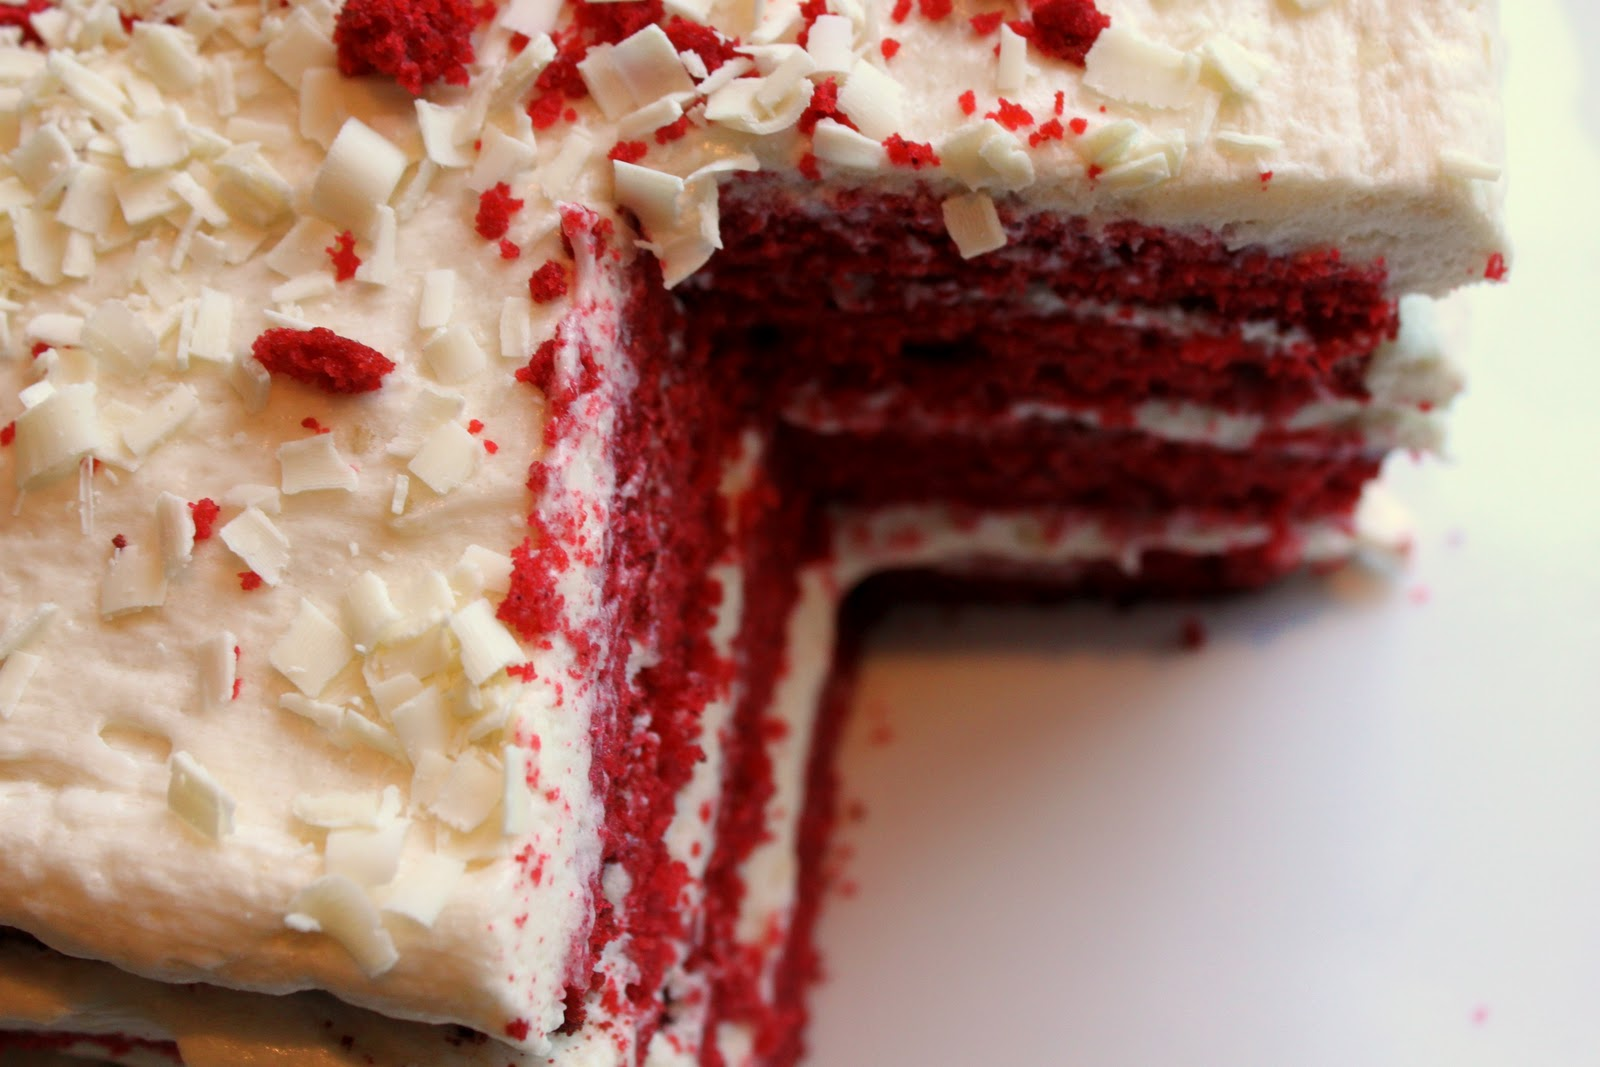 Cake Red Velvet White Chocolate : Red Velvet Chocolate Cake Recipe   Dishmaps